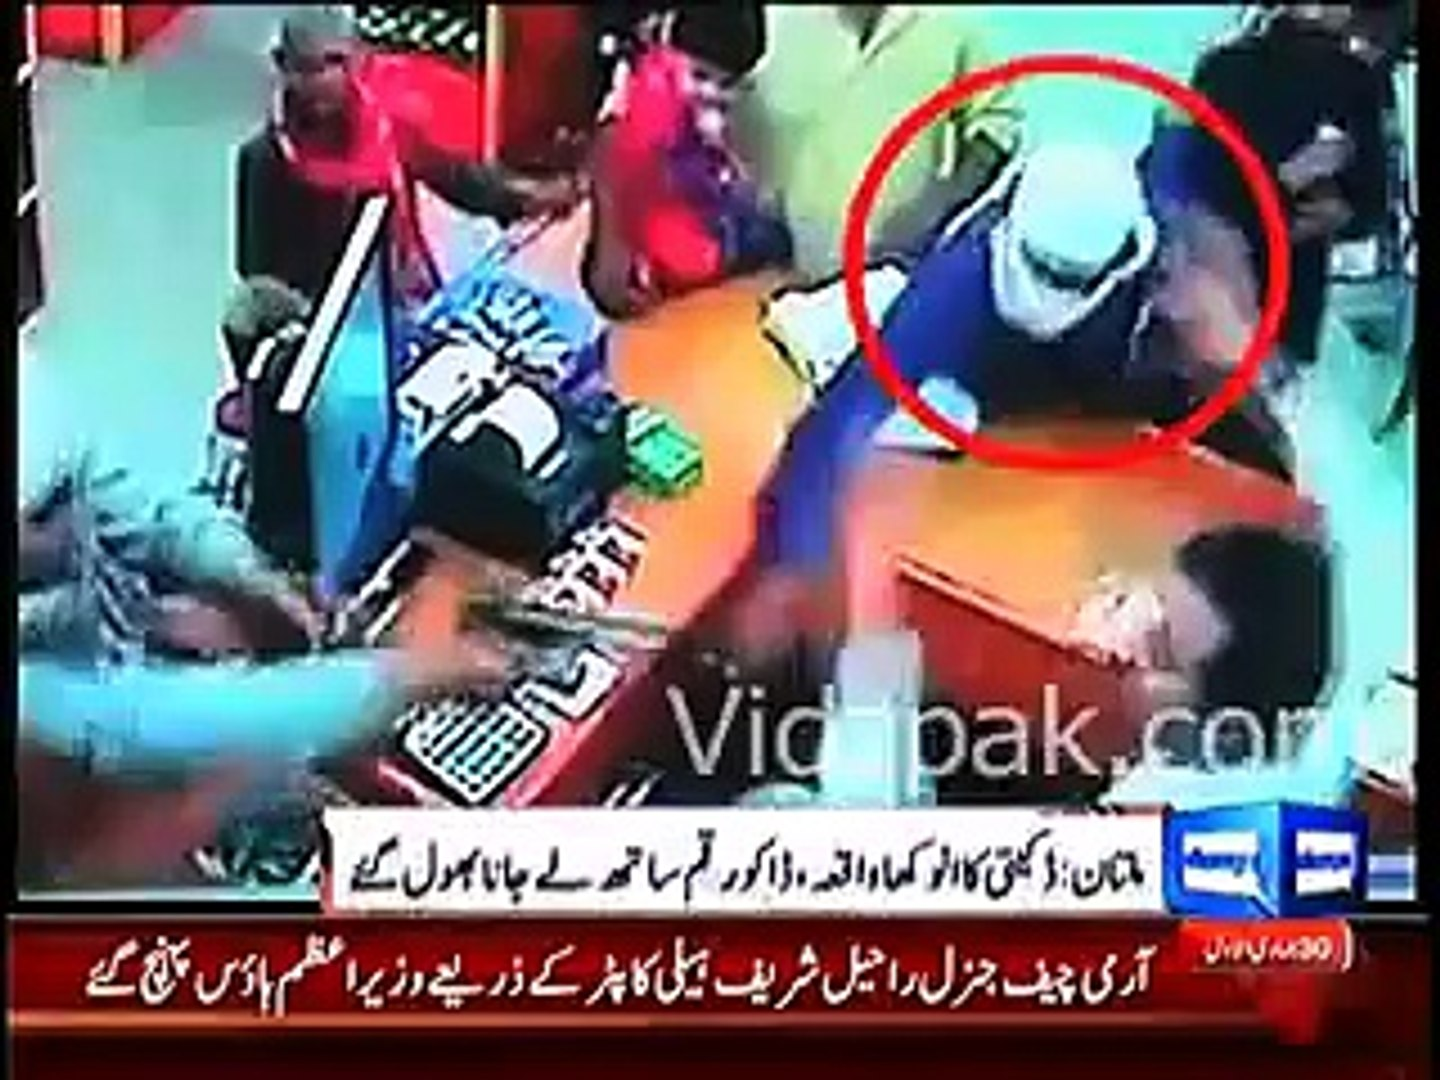 Unique way of Robbery Incident in Multan - Robbers forgot to take Stolen mone...